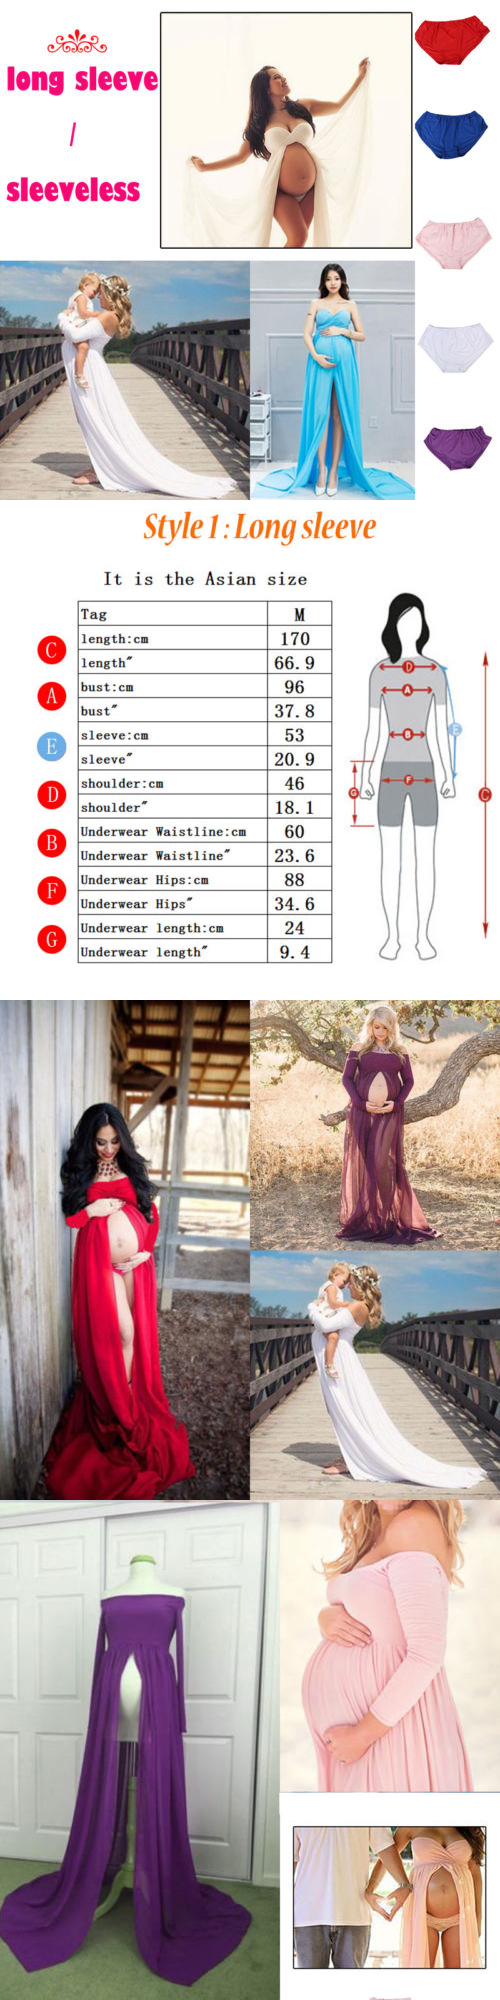 Dresses 11534 pregnant maternity photography fancy prop maternity dresses 11534 pregnant maternity photography fancy prop maternity clothes maxi dress large us ombrellifo Images